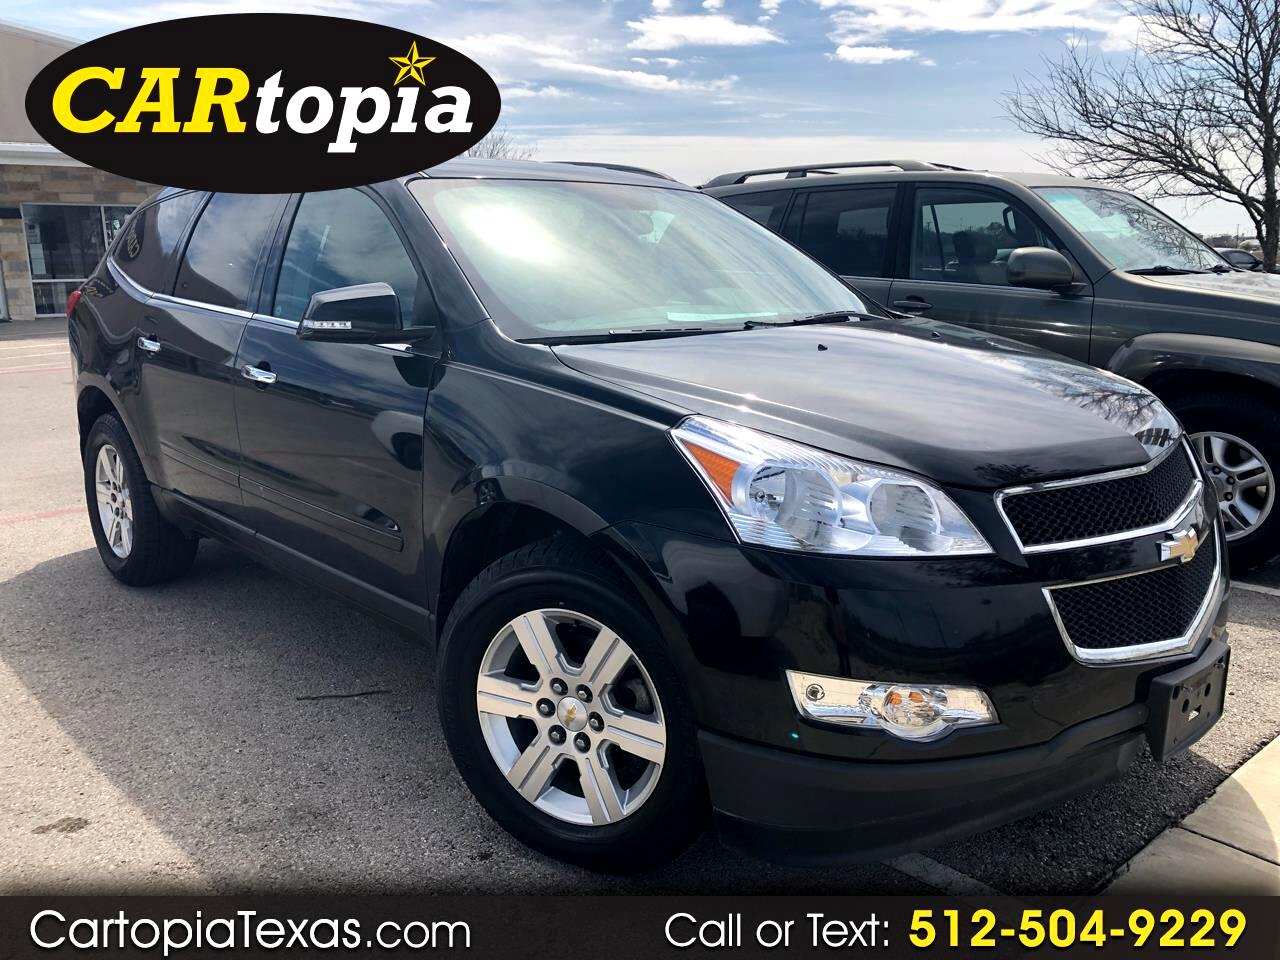 2012 Chevrolet Traverse LT1 AWD